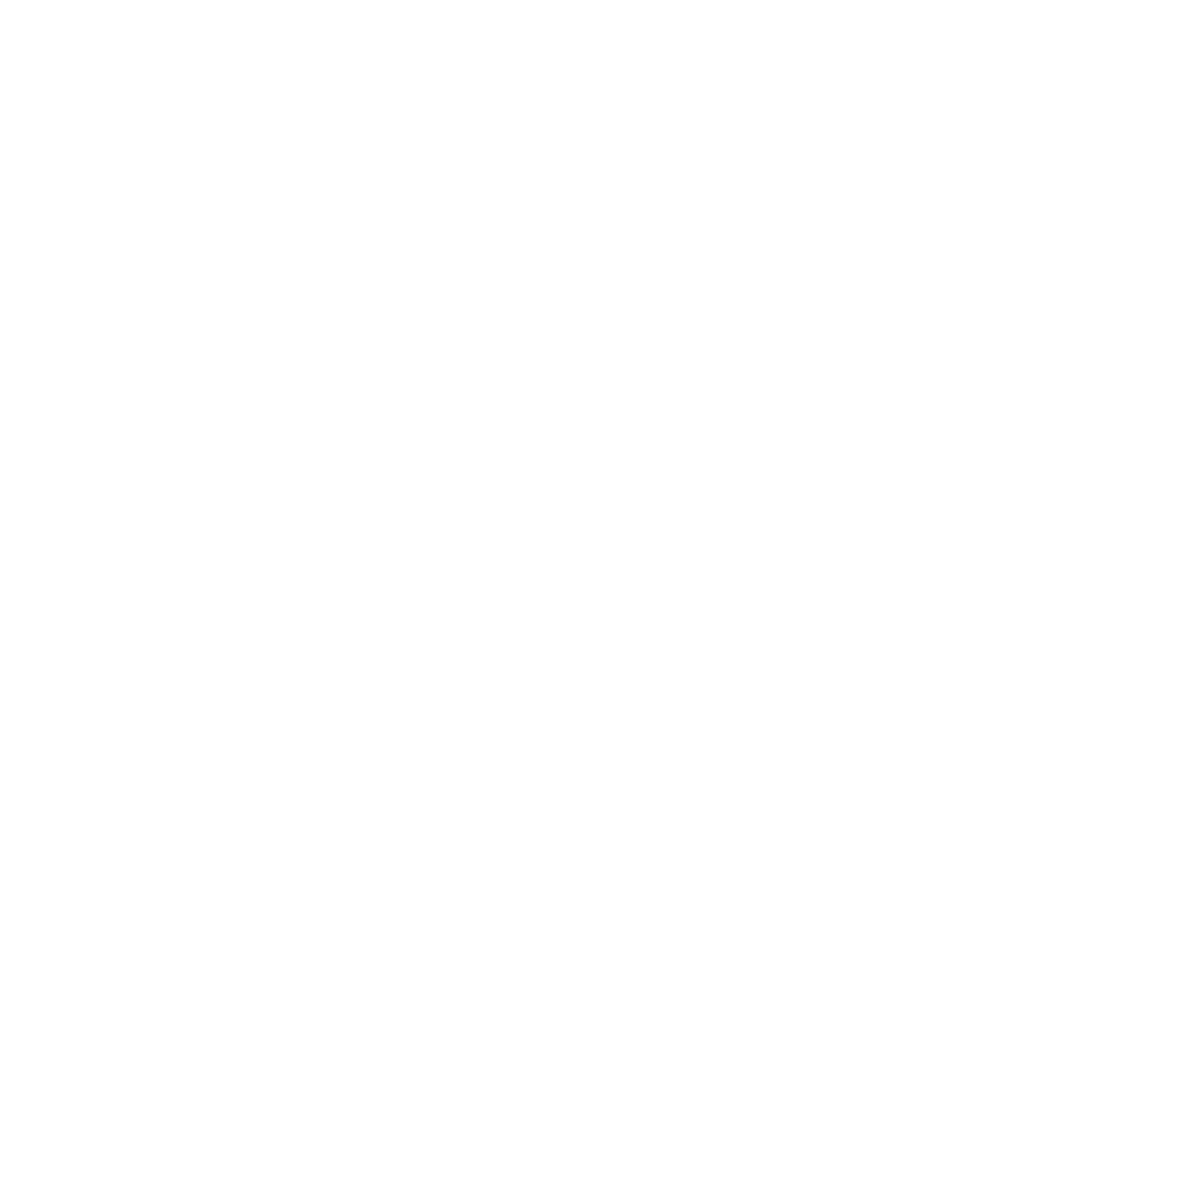 Clark College Library